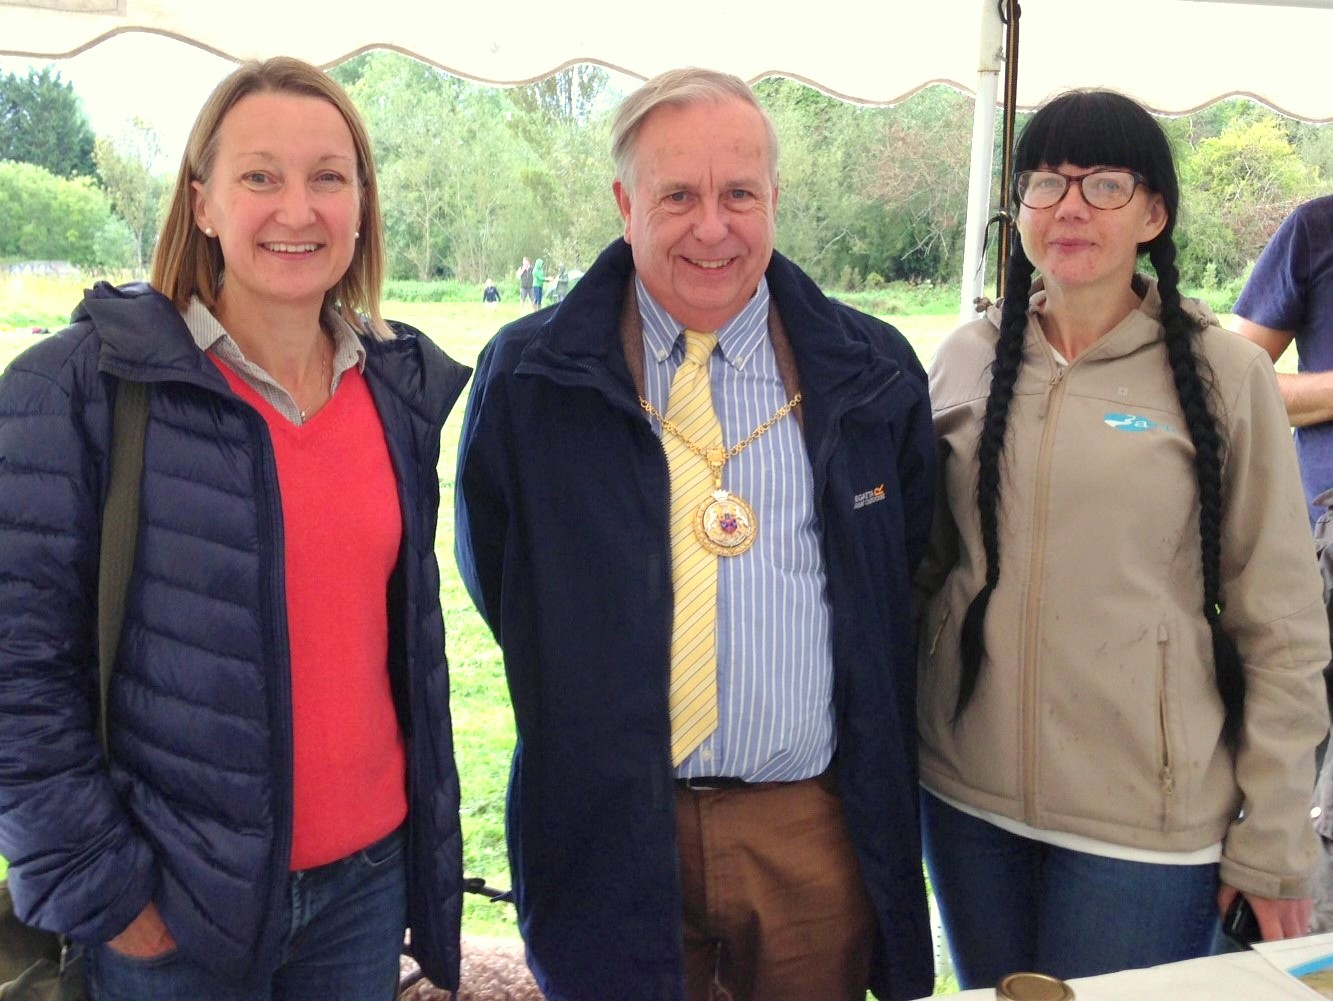 The Mayor with Charlotte Hitchmough & Anna Forbes of ARK